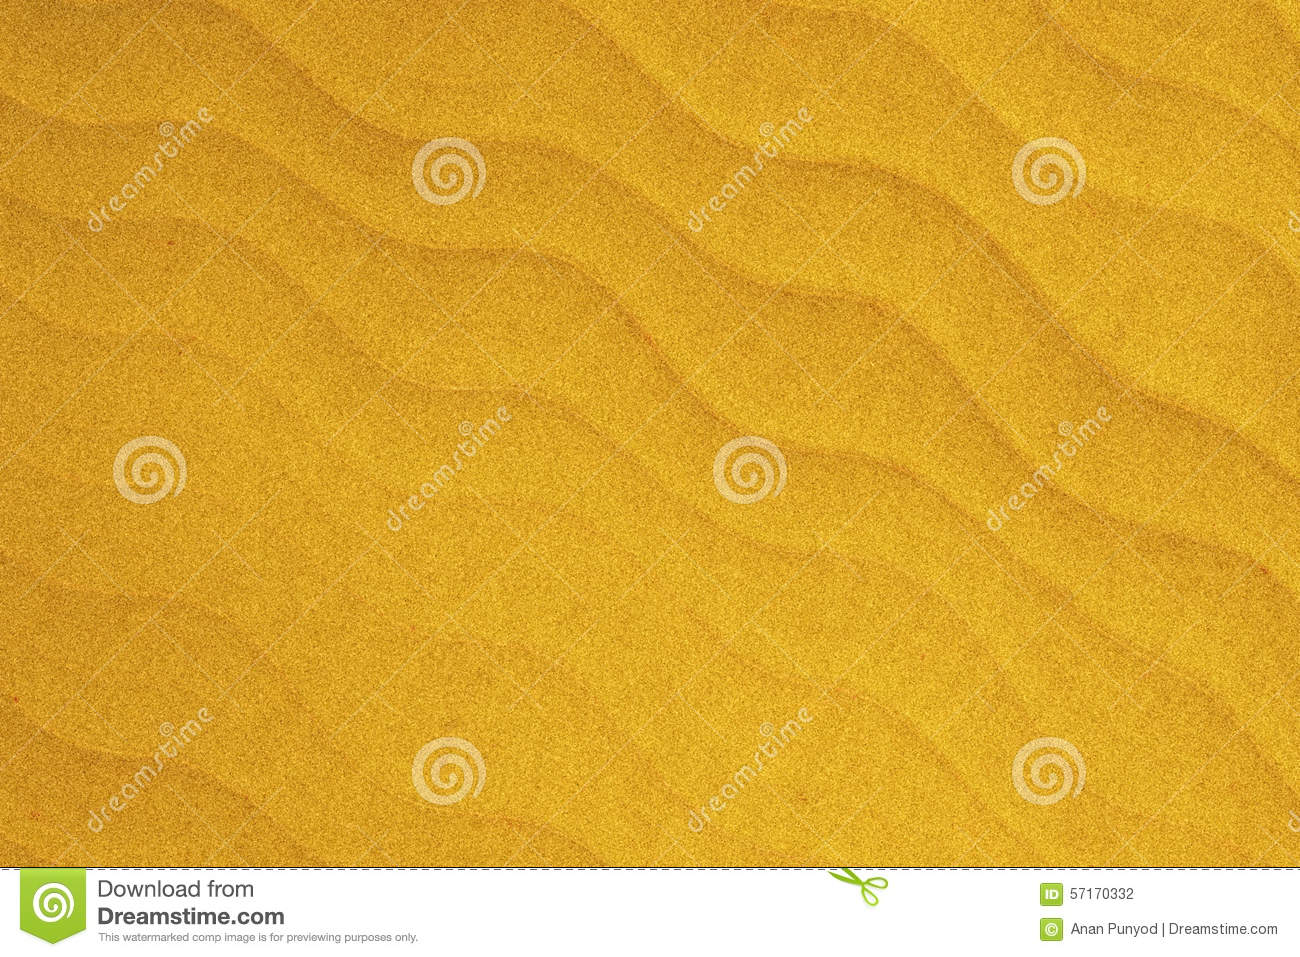 Soft yellow wave is like Beach sand texture abstract background